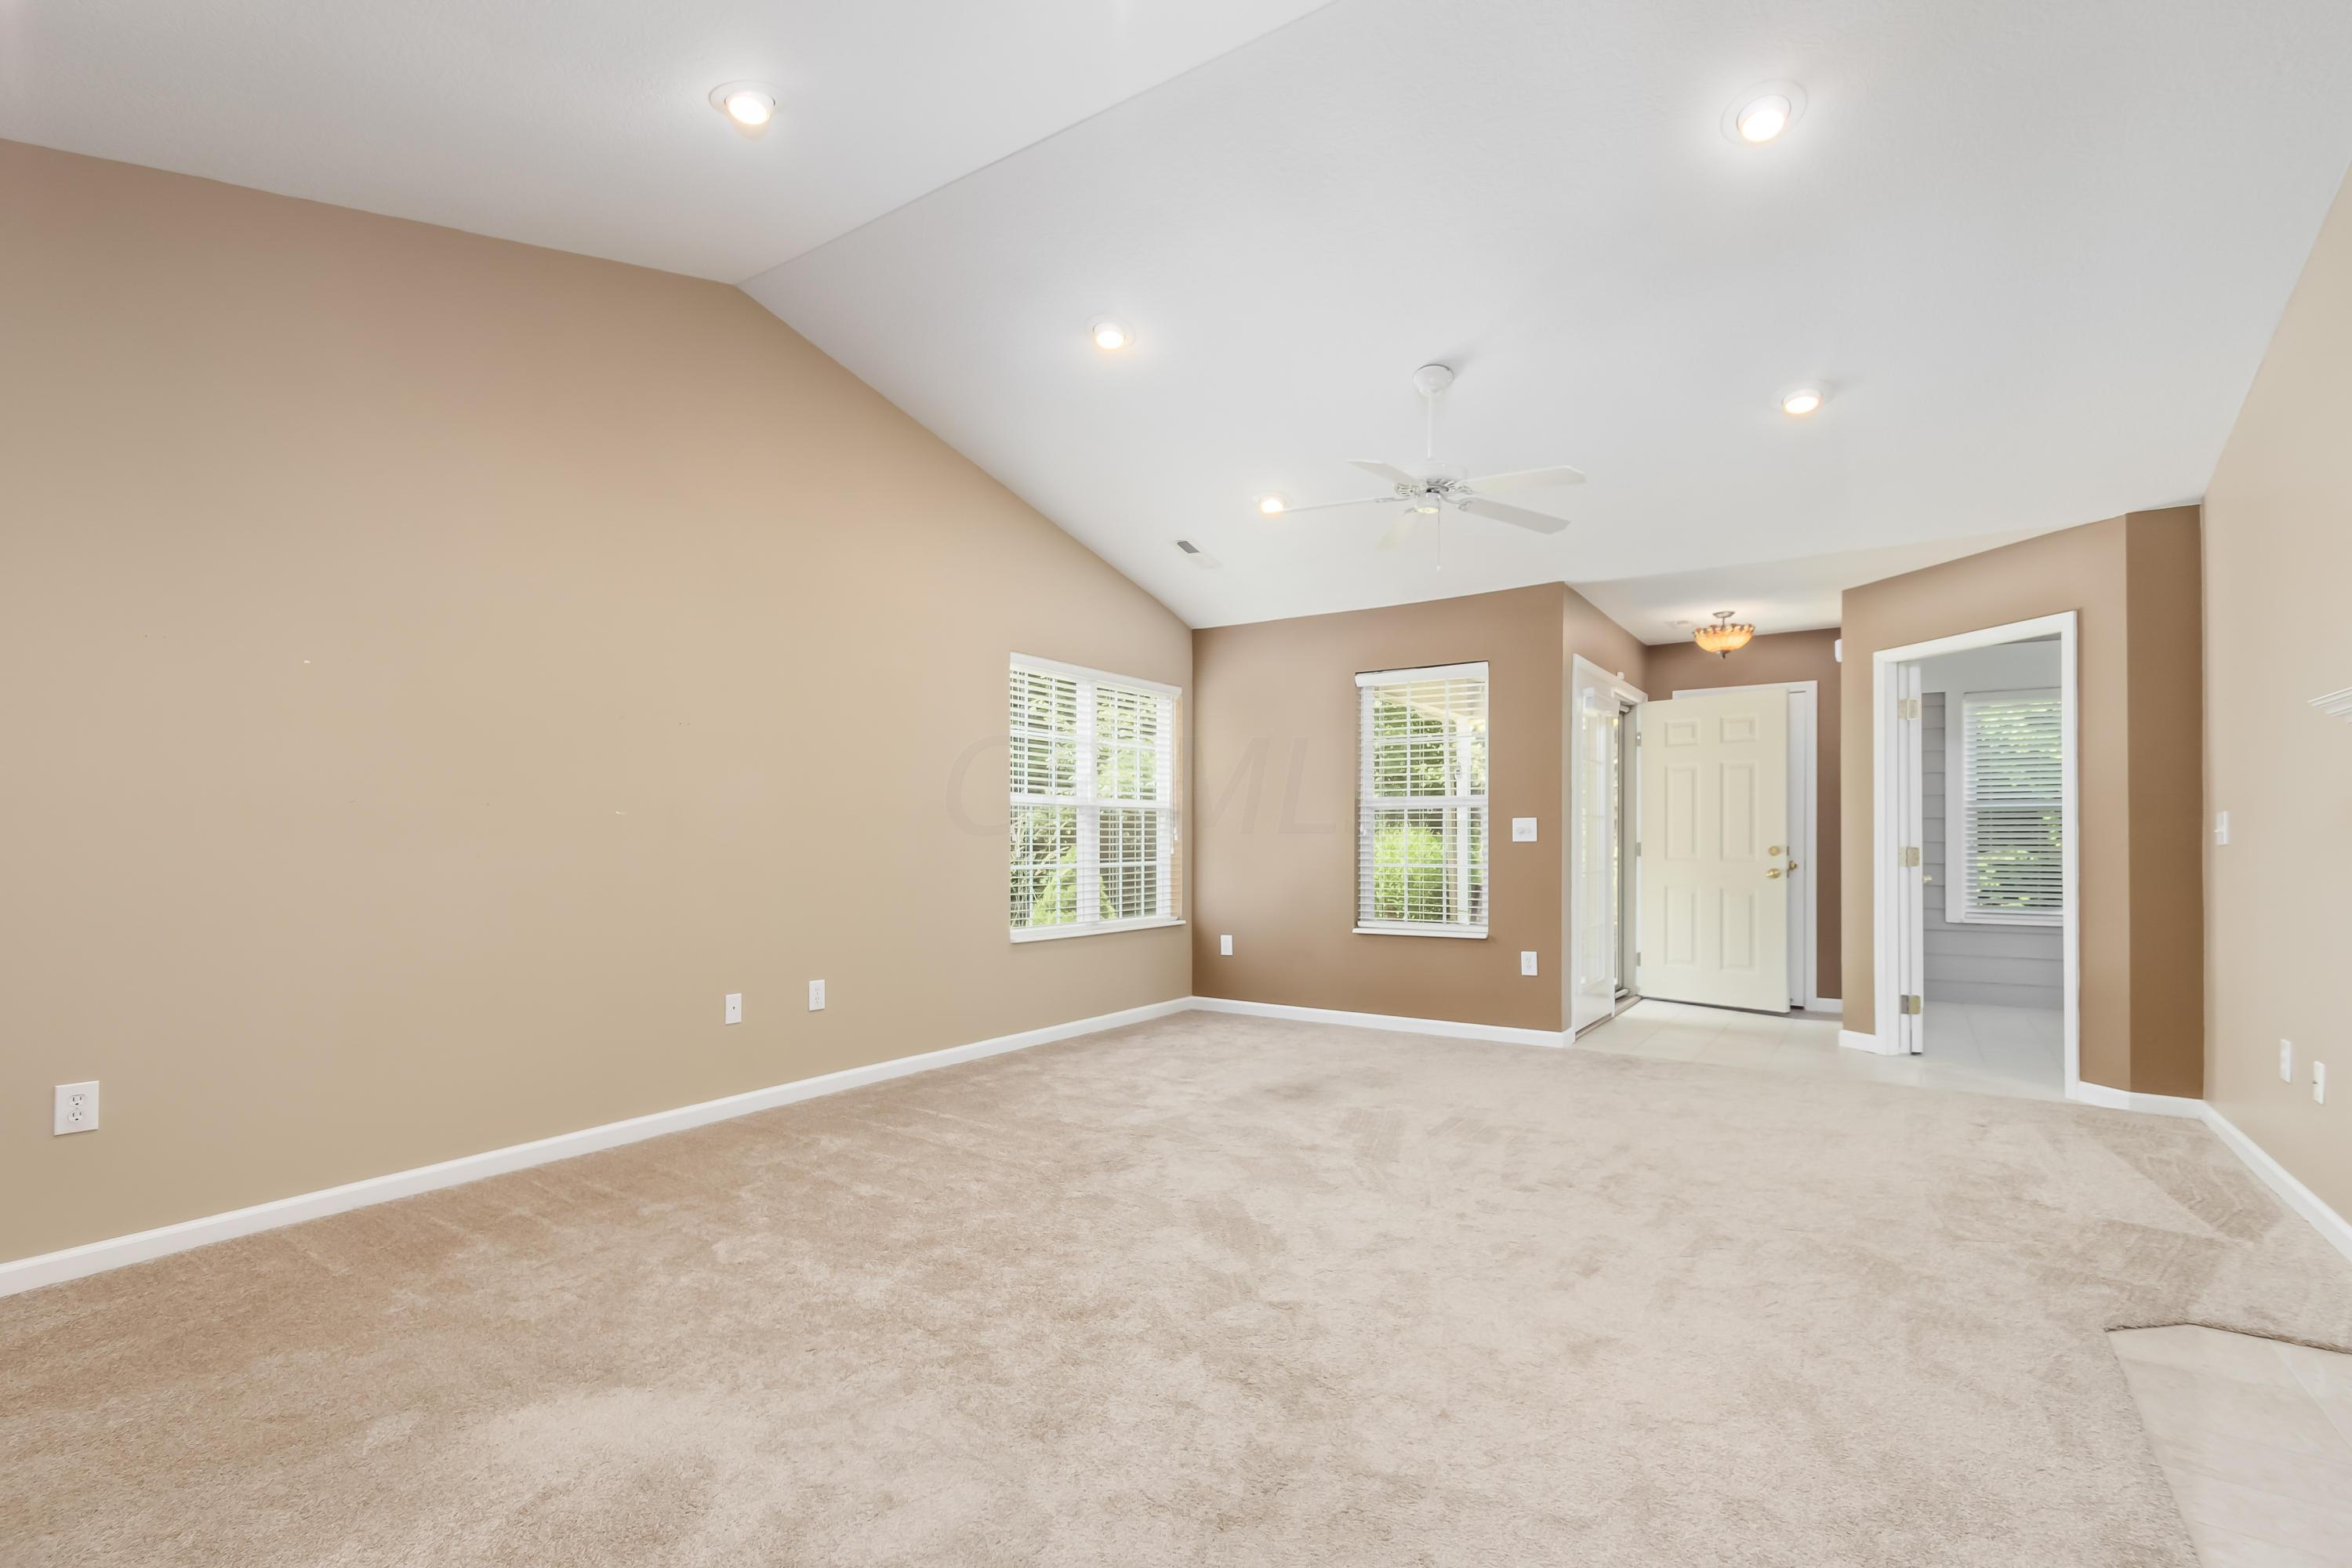 4799 Turning Leaf Place, Powell, Ohio 43065, 3 Bedrooms Bedrooms, ,3 BathroomsBathrooms,Residential,For Sale,Turning Leaf,220021011